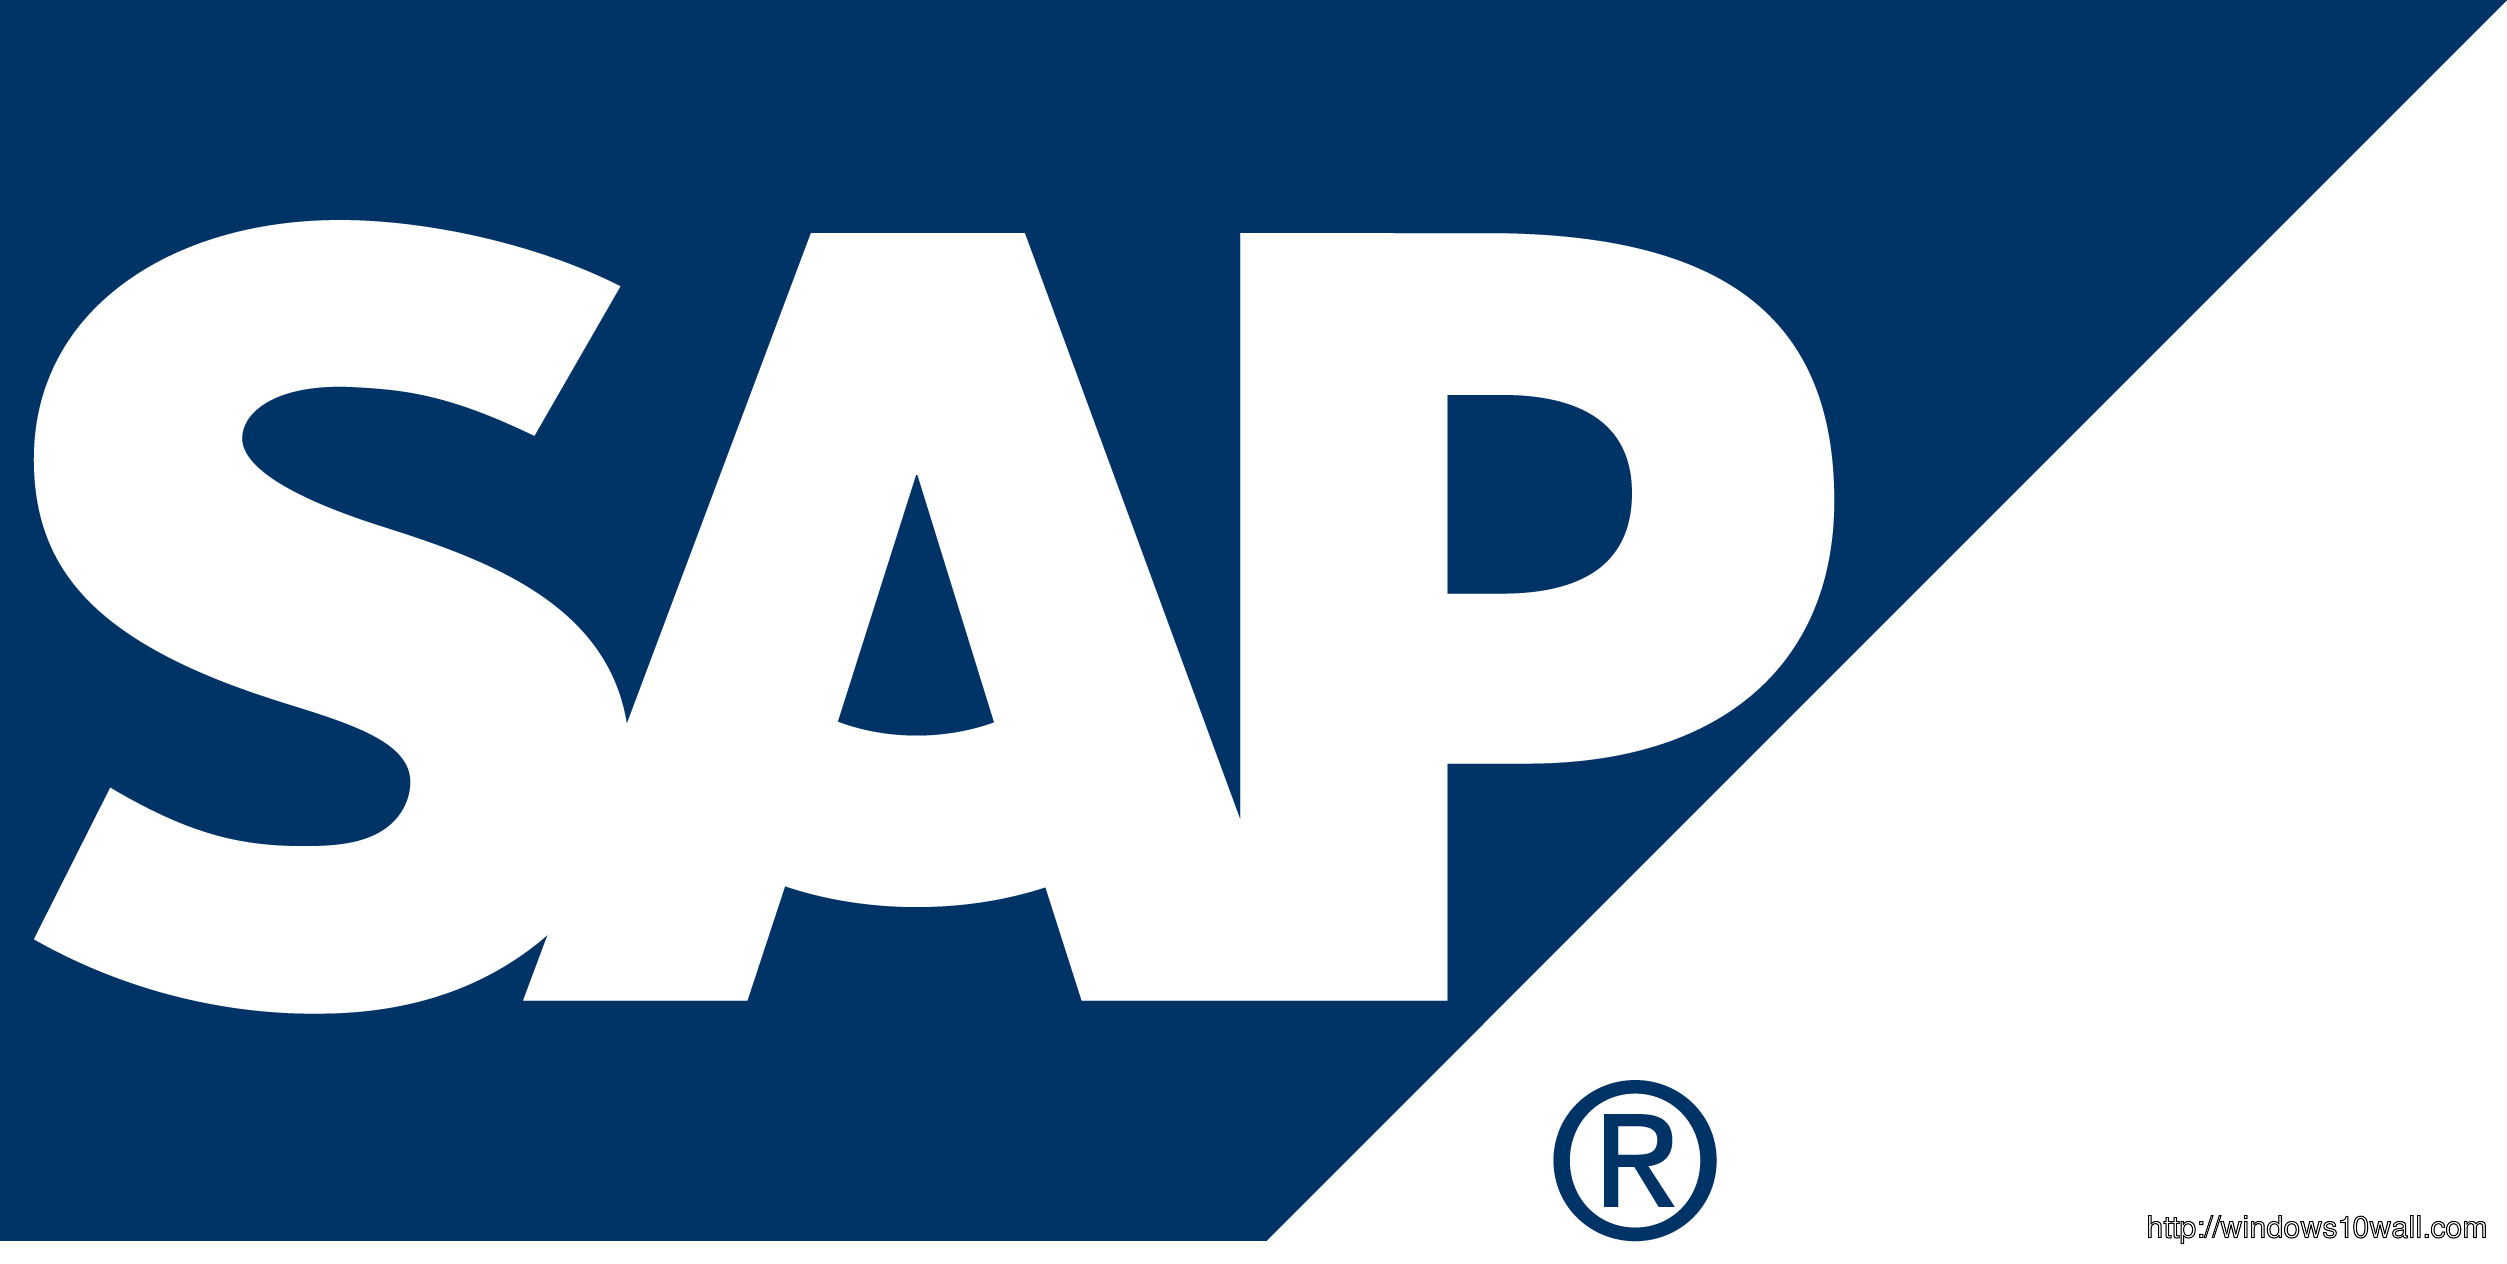 sap logo for your business wallpaper download